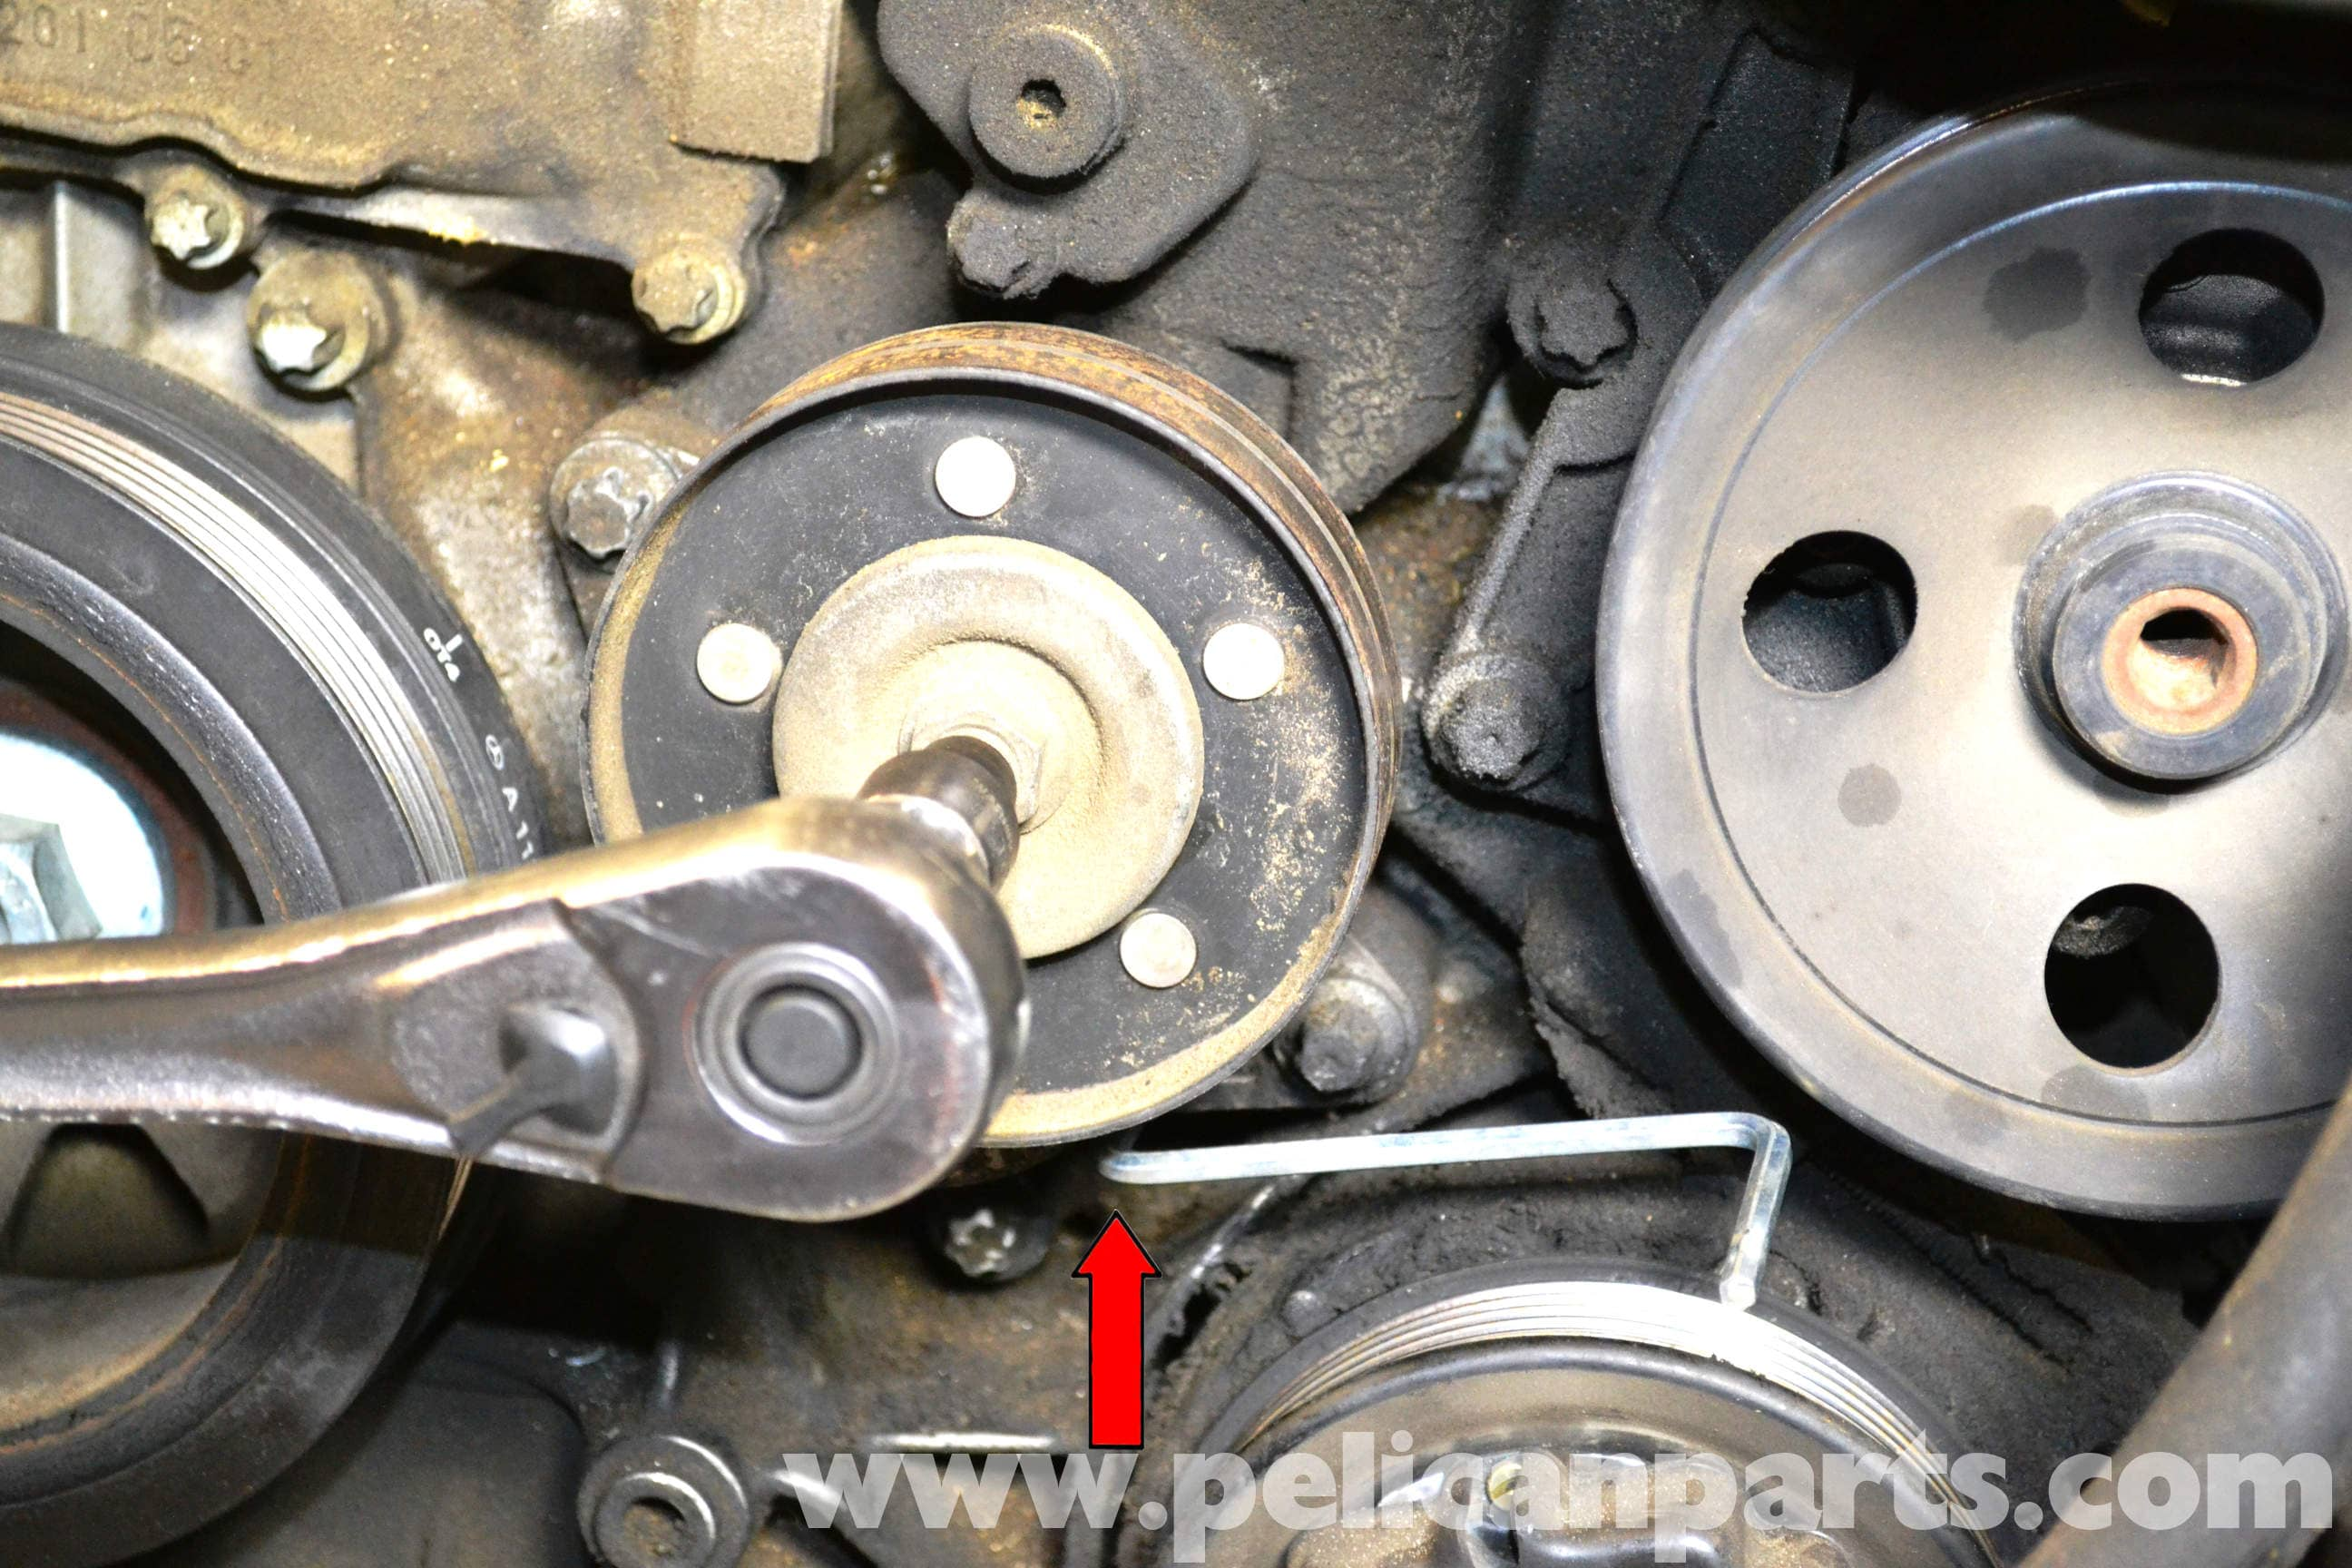 Mercedes-Benz W203 Idler Pulley Replacement - (2001-2007